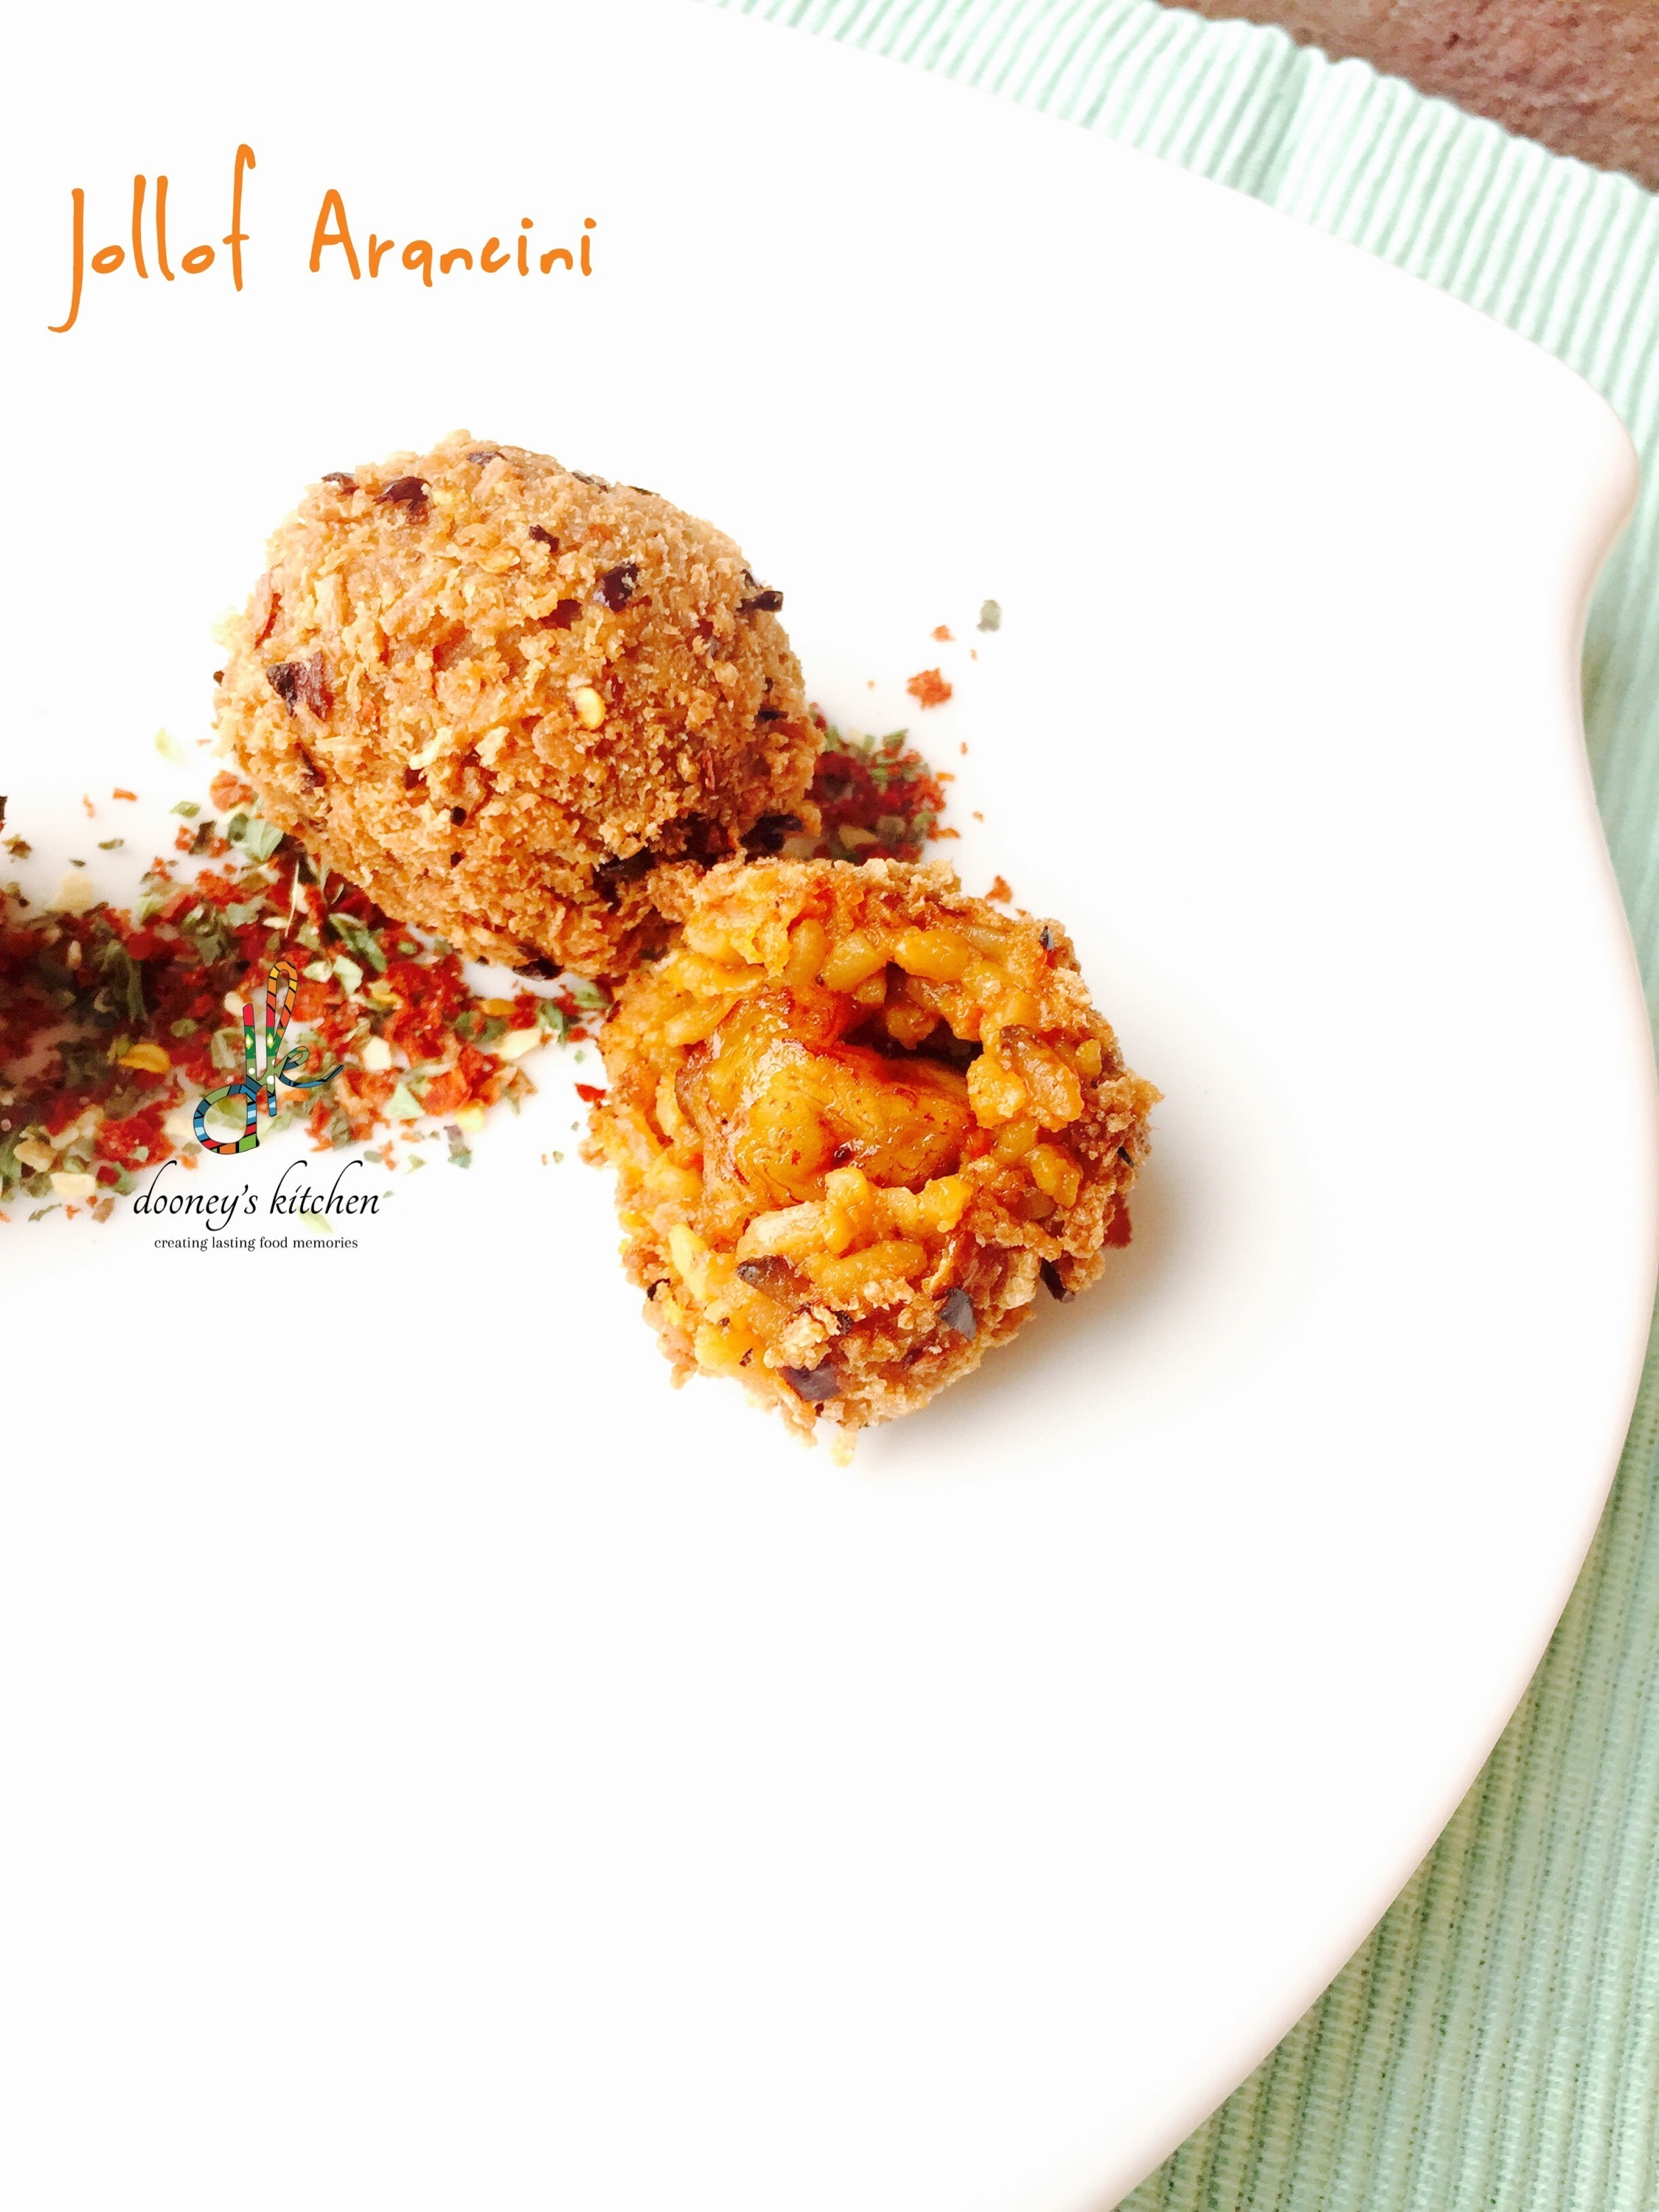 Jollof Arancini – an evening at the Waitrose Cookery School